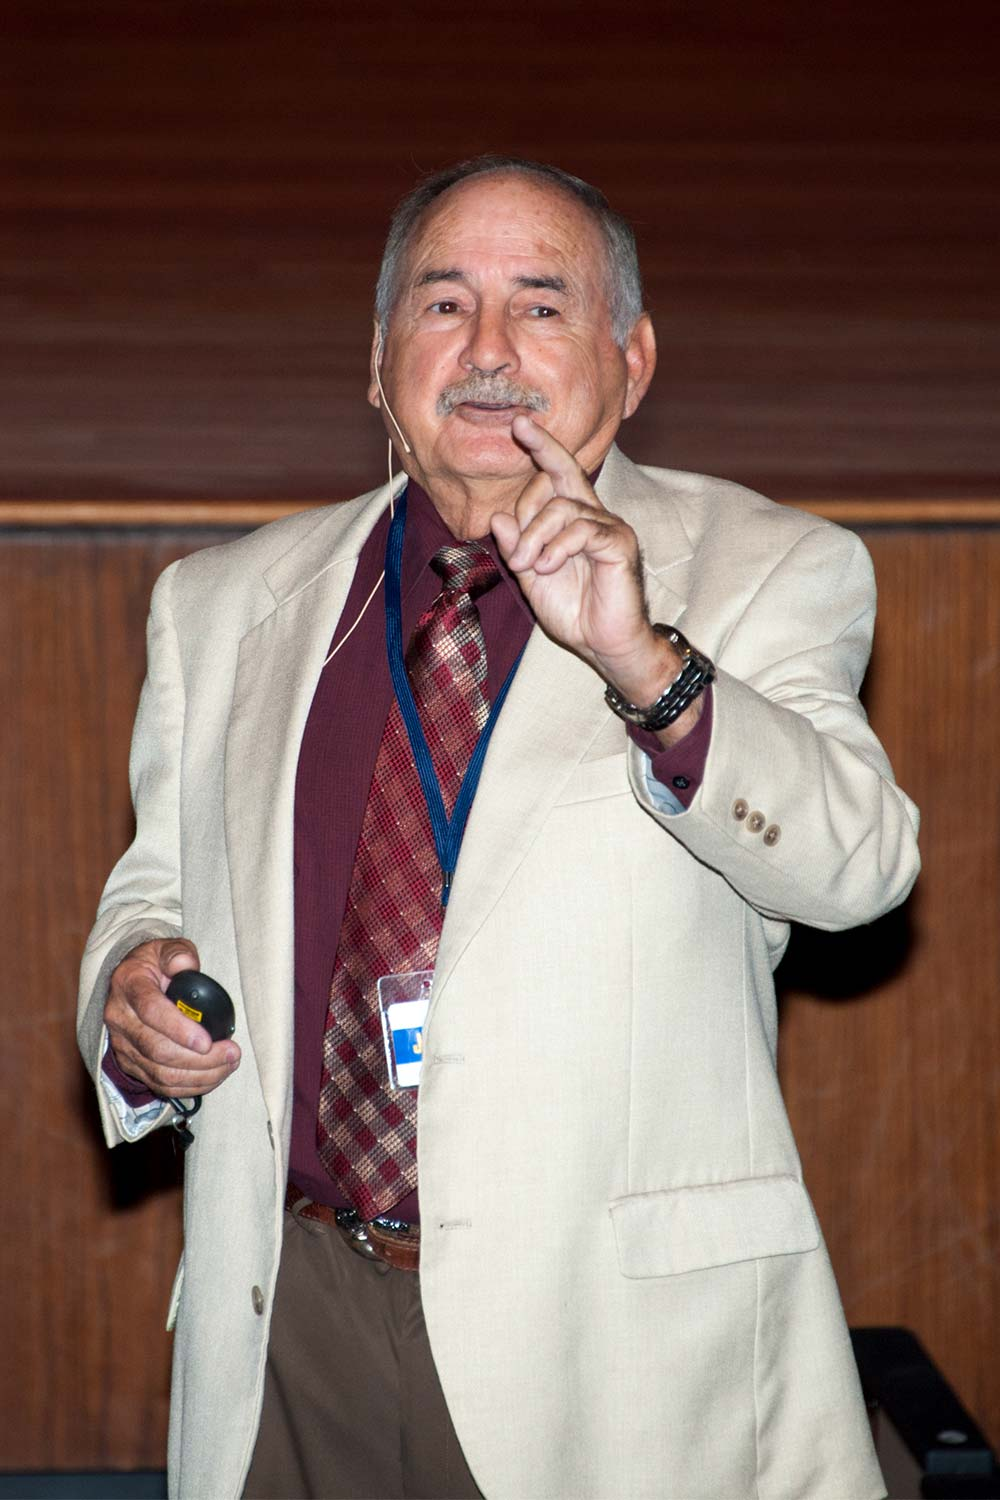 Jose Garza (Photo by Jim Robertson)